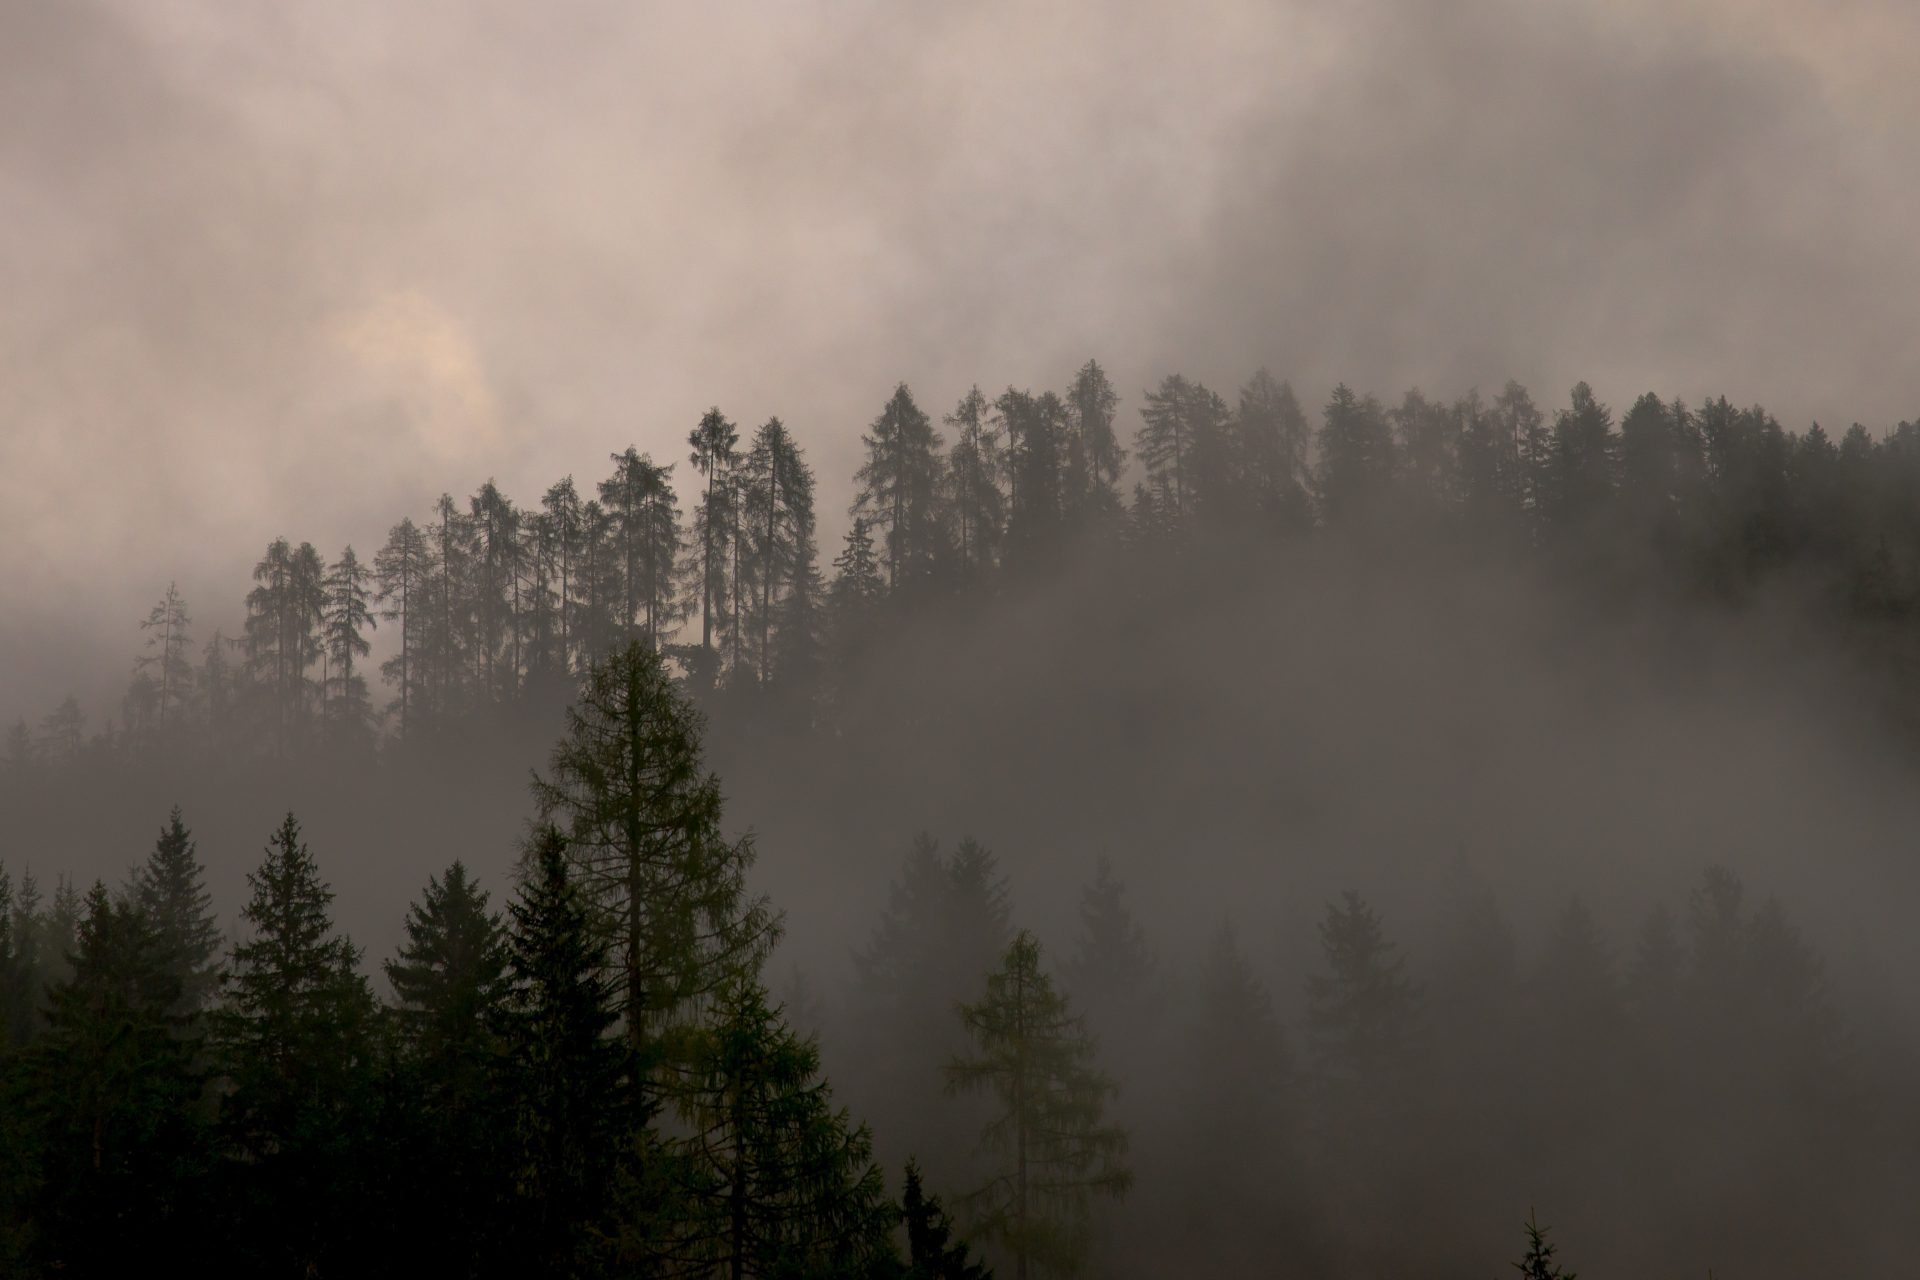 View of forest through a haze of smoke